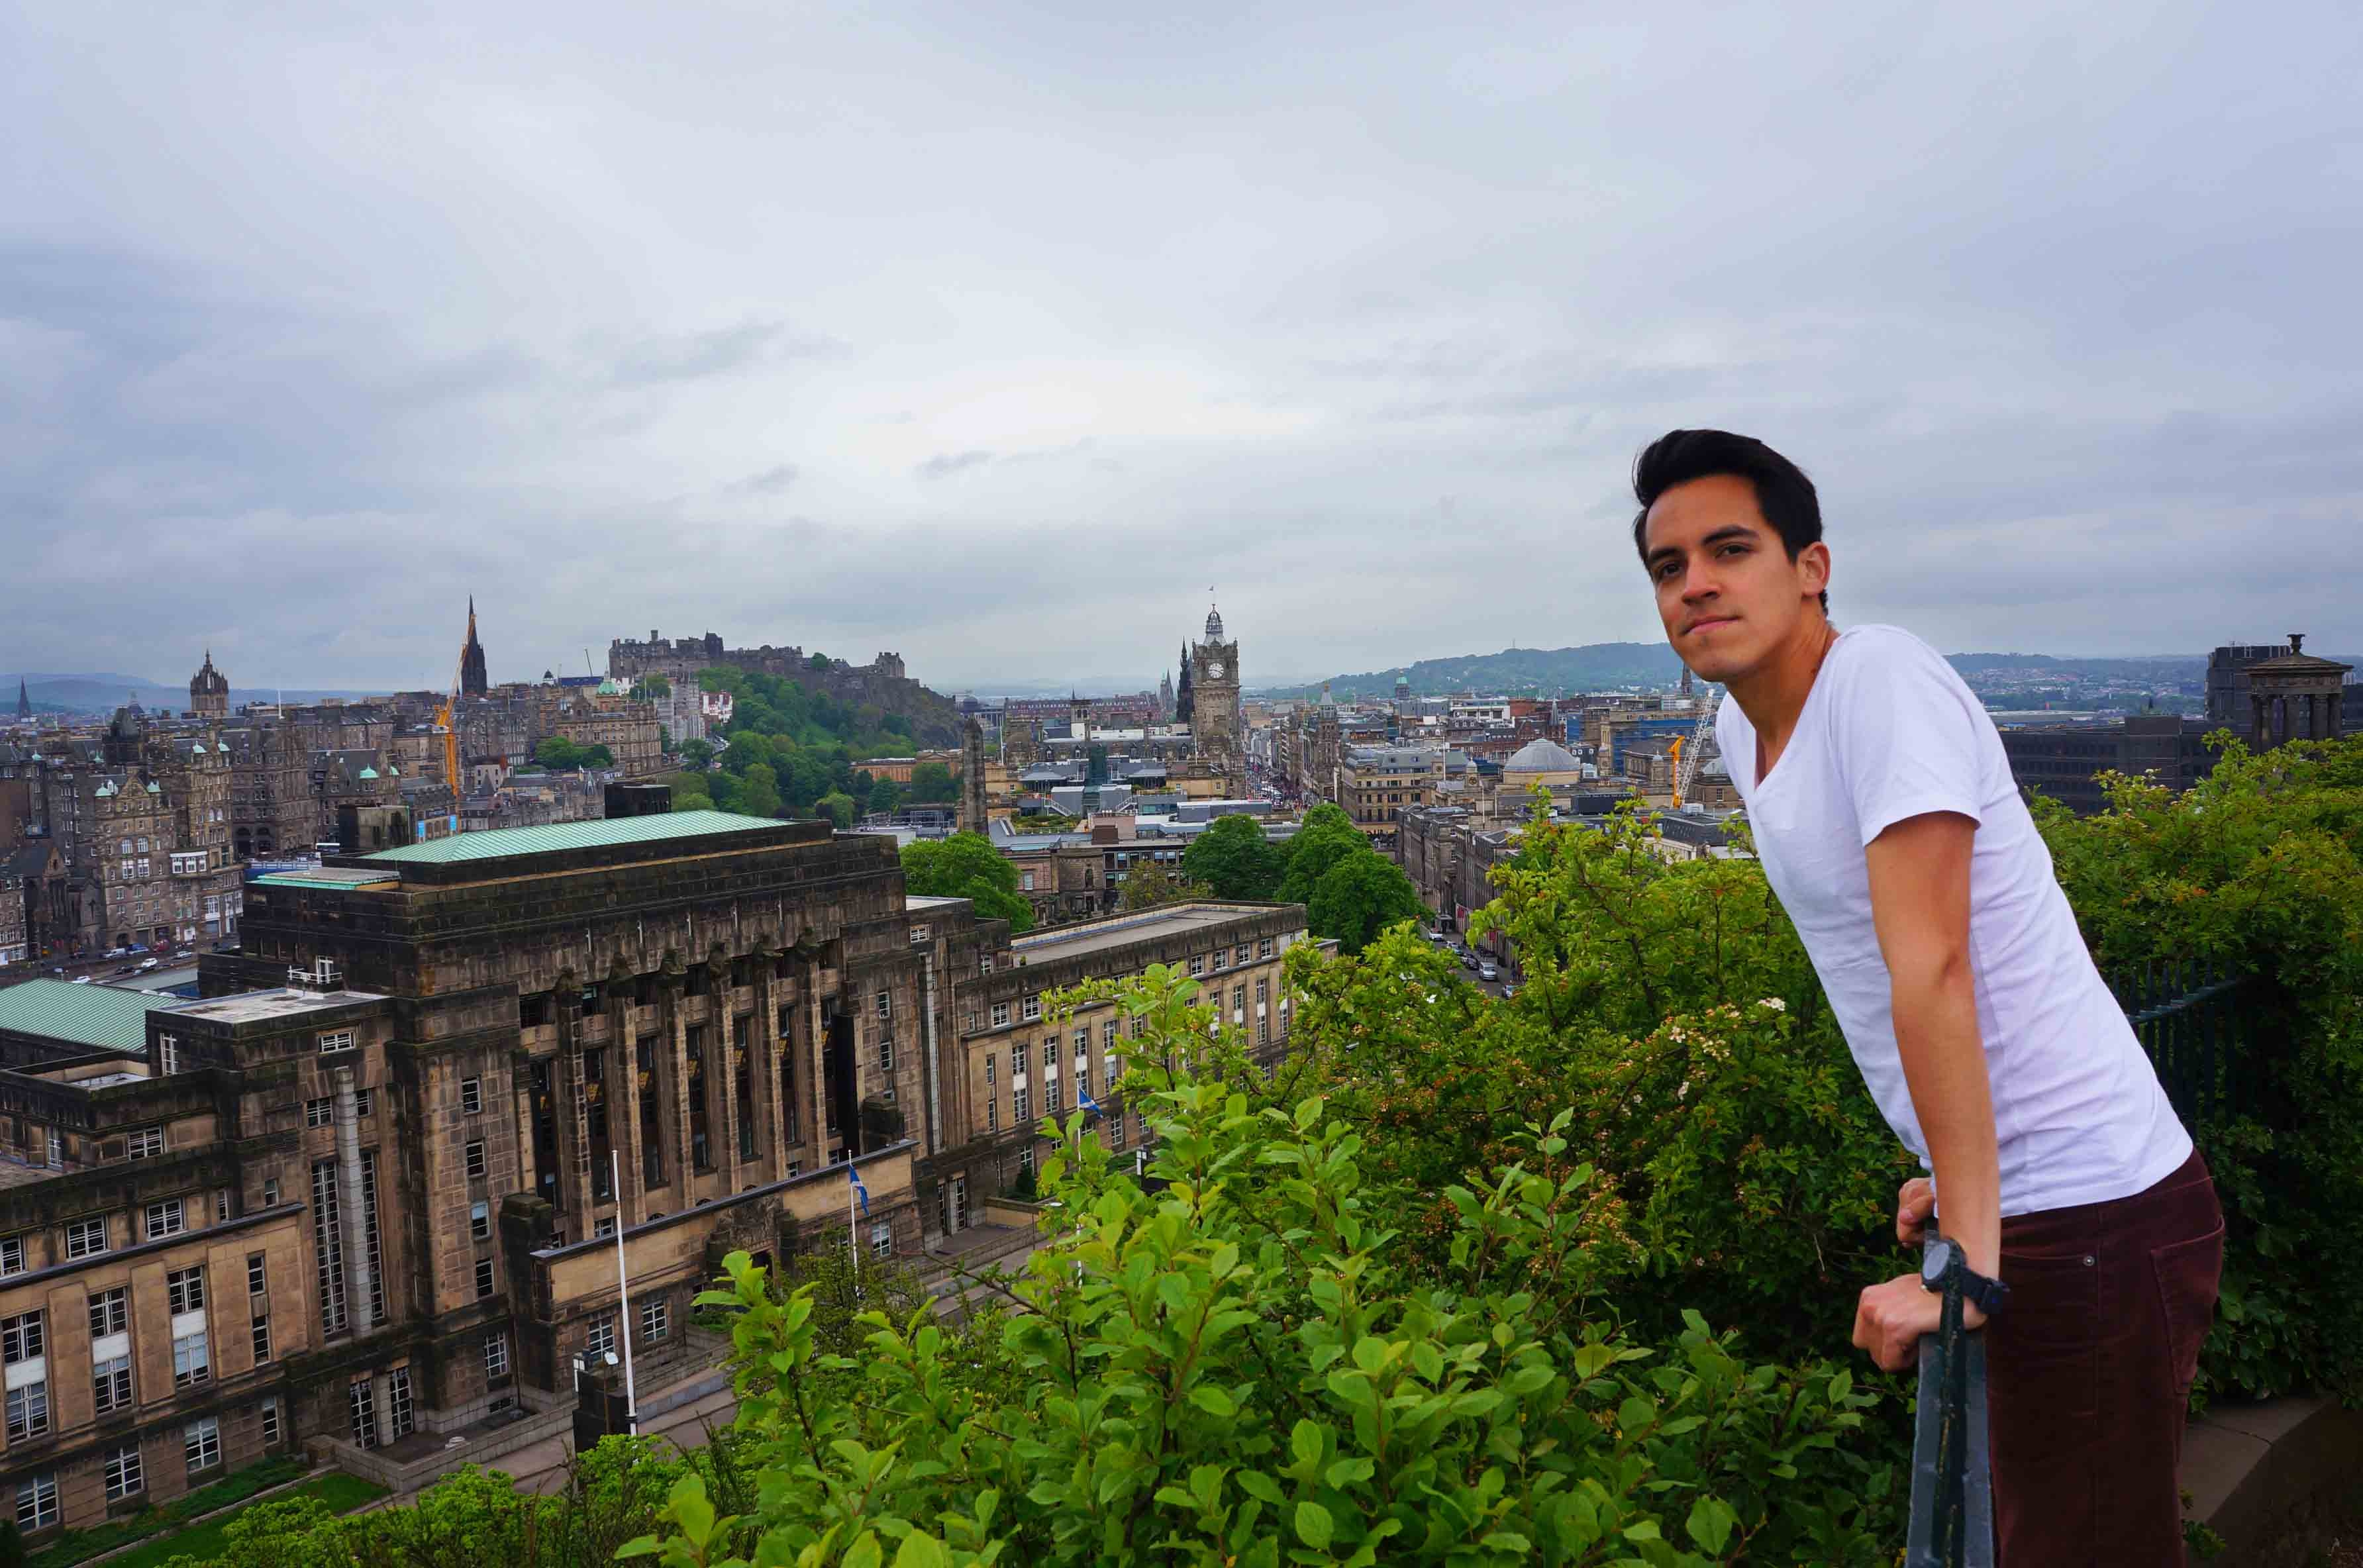 Trainspotting a Edimburgo